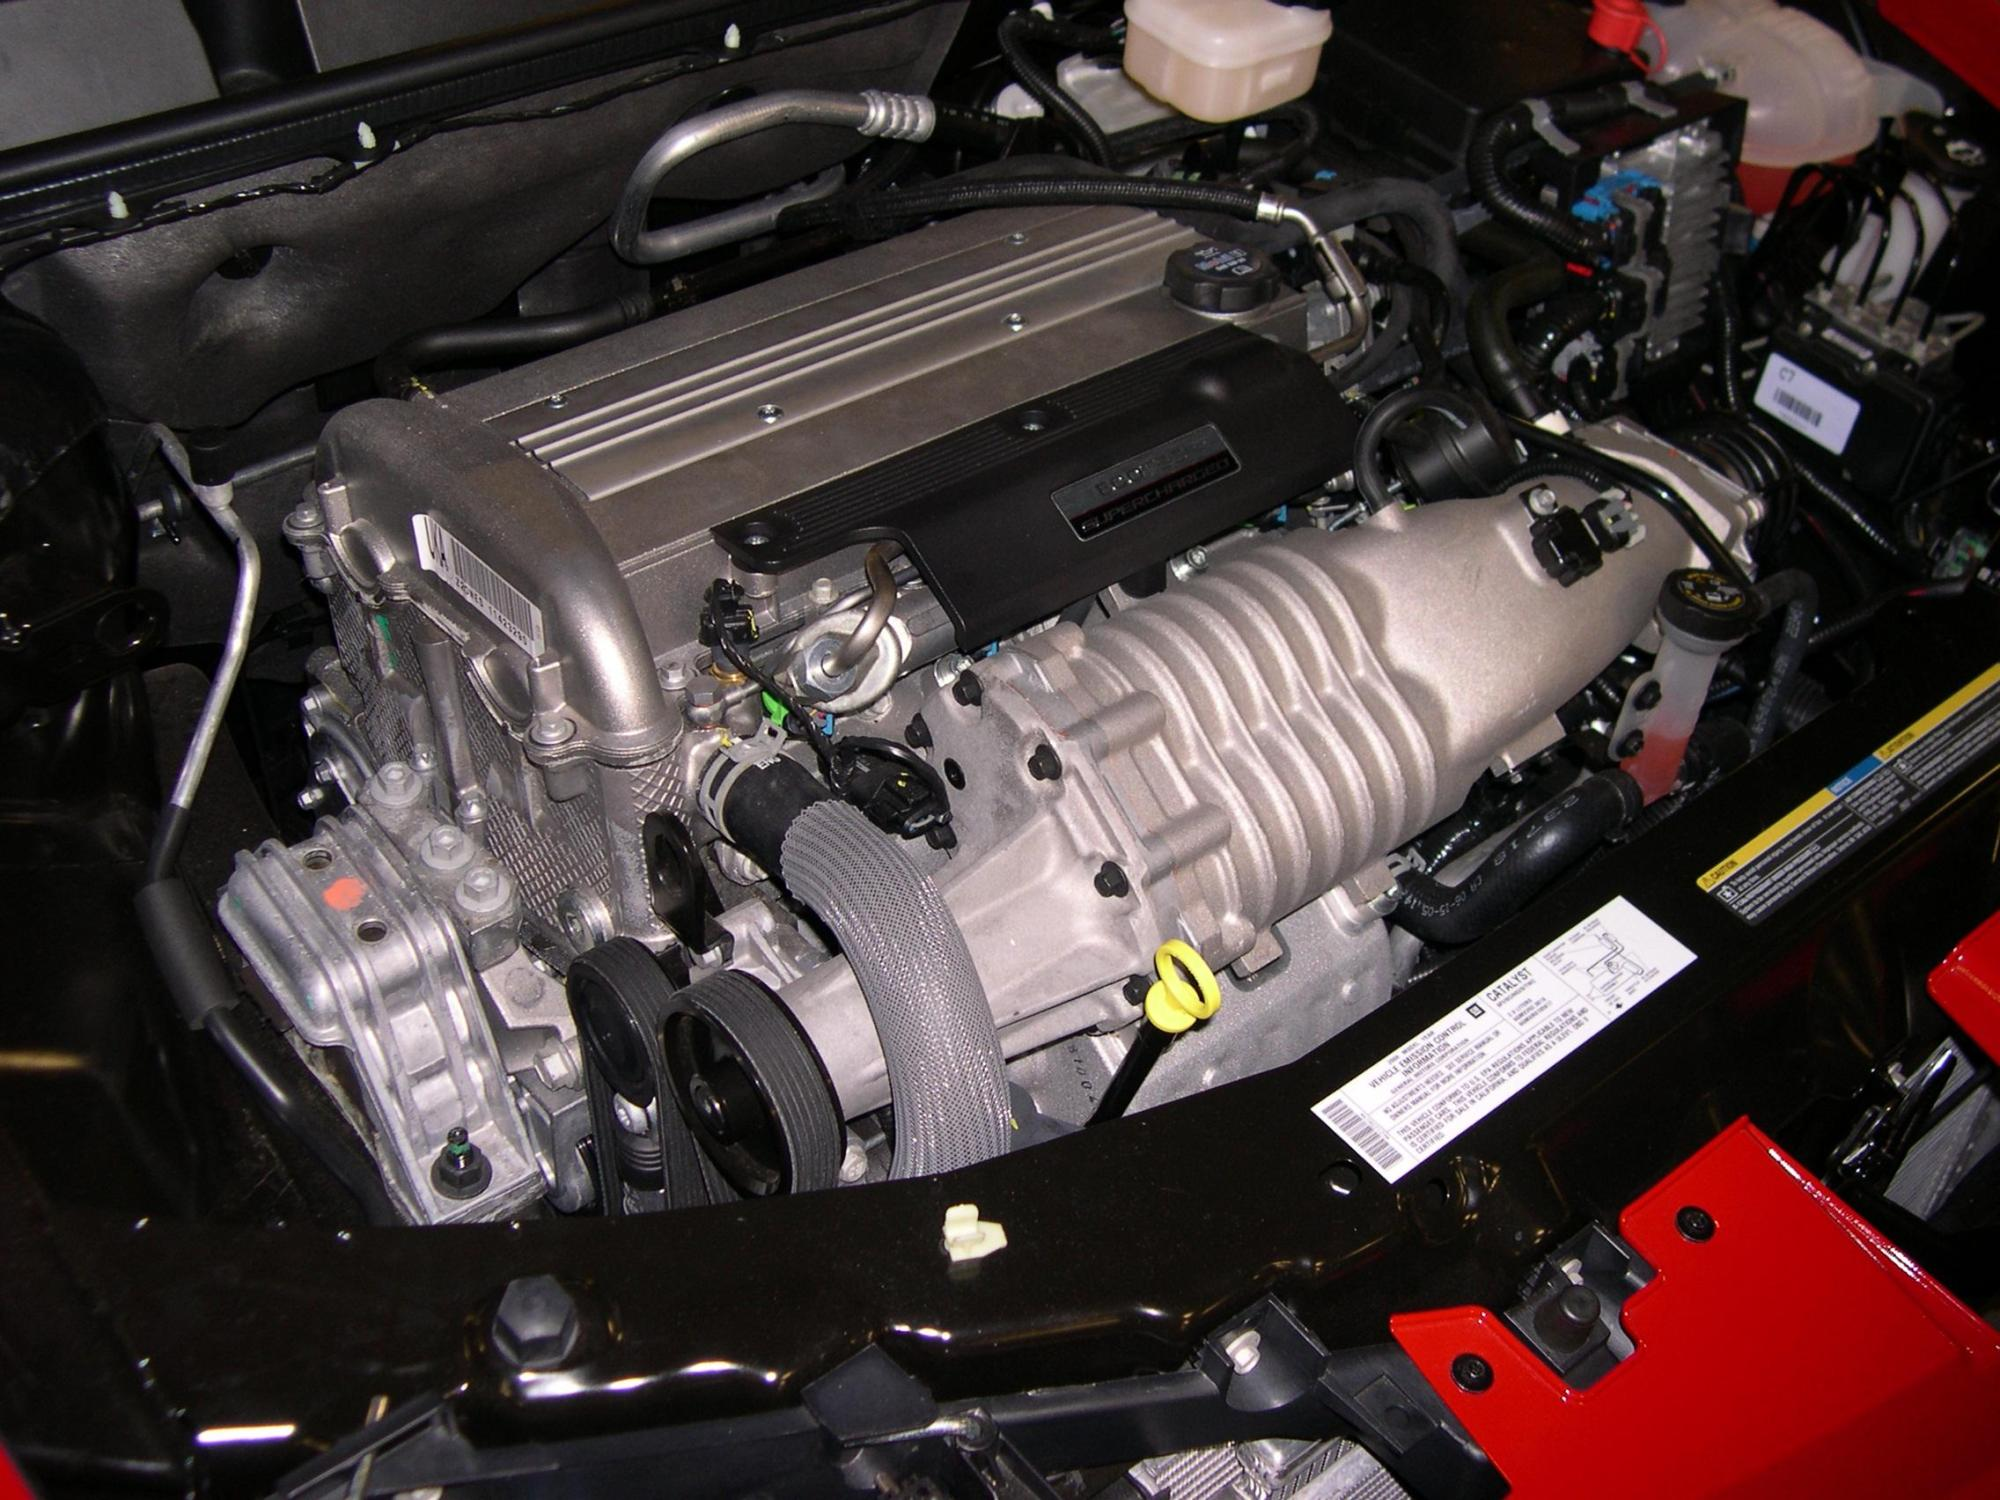 hight resolution of rover 220 turbo wiring diagram best wiring librarylsj gm family ii engine lsj rover 220 turbo